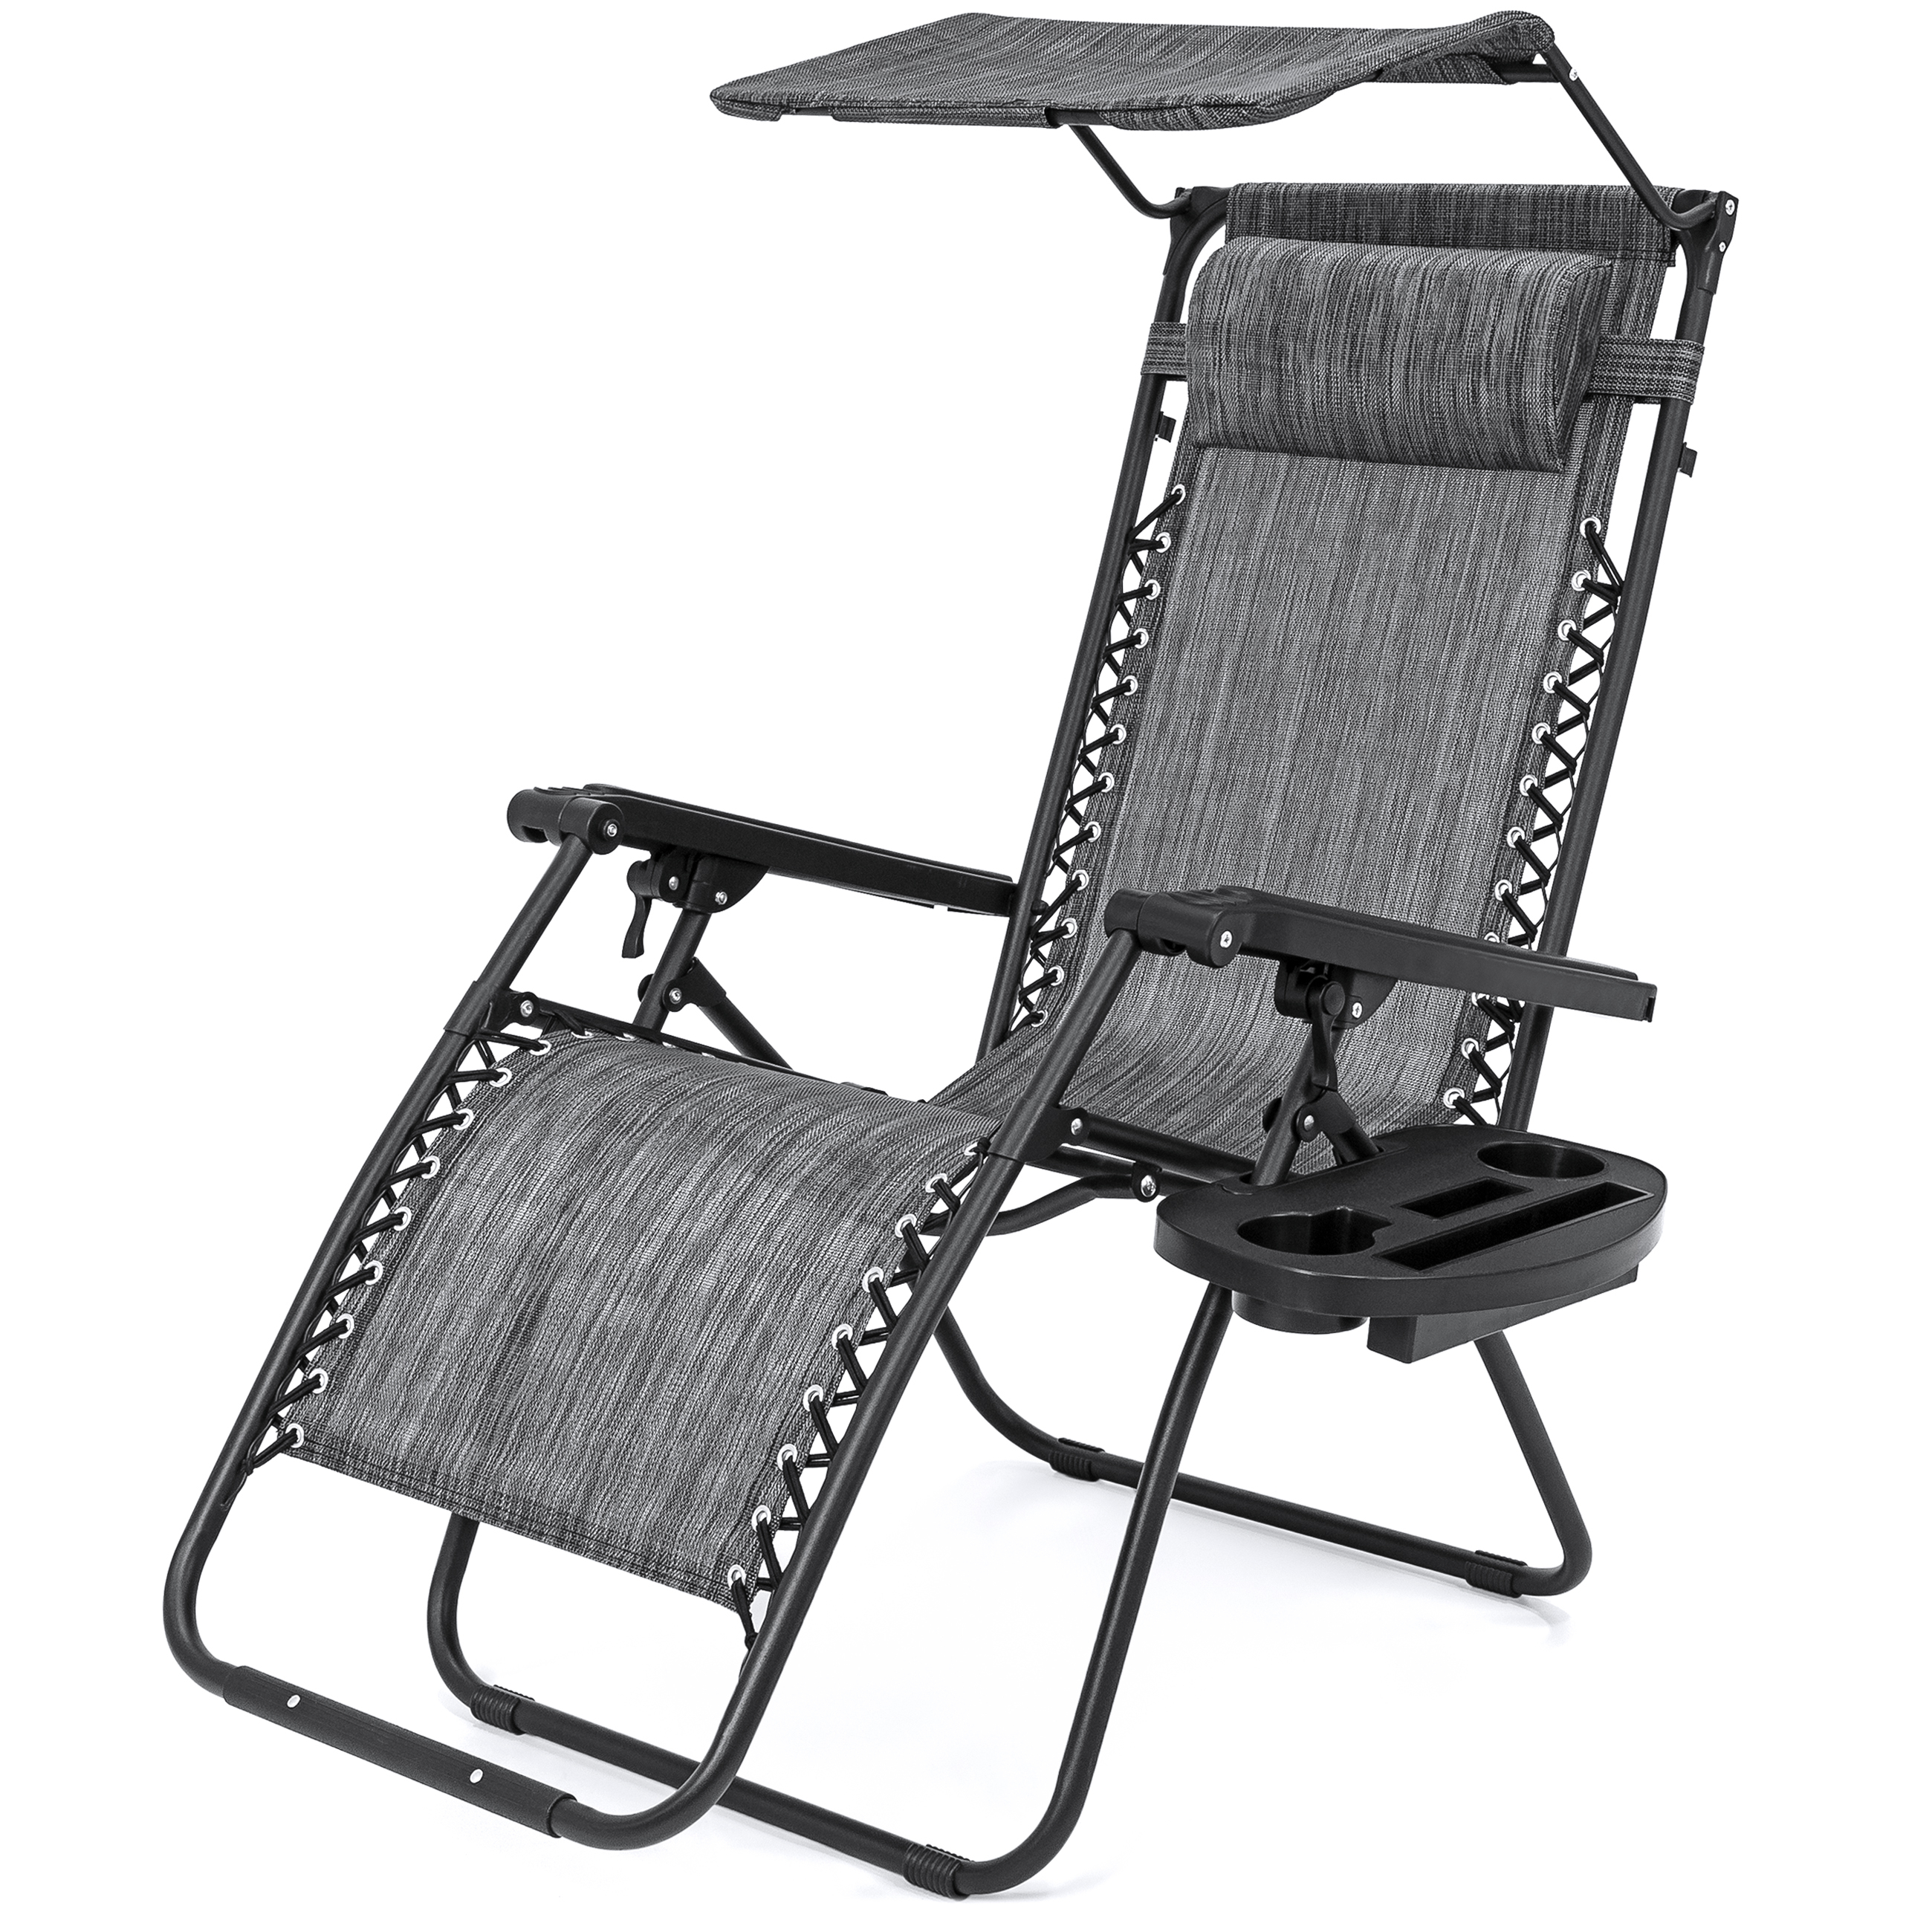 Favorite Double Reclining Lounge Chairs With Canopy In Best Choice Products Zero Gravity Chair W/ Canopy Shade (View 12 of 25)